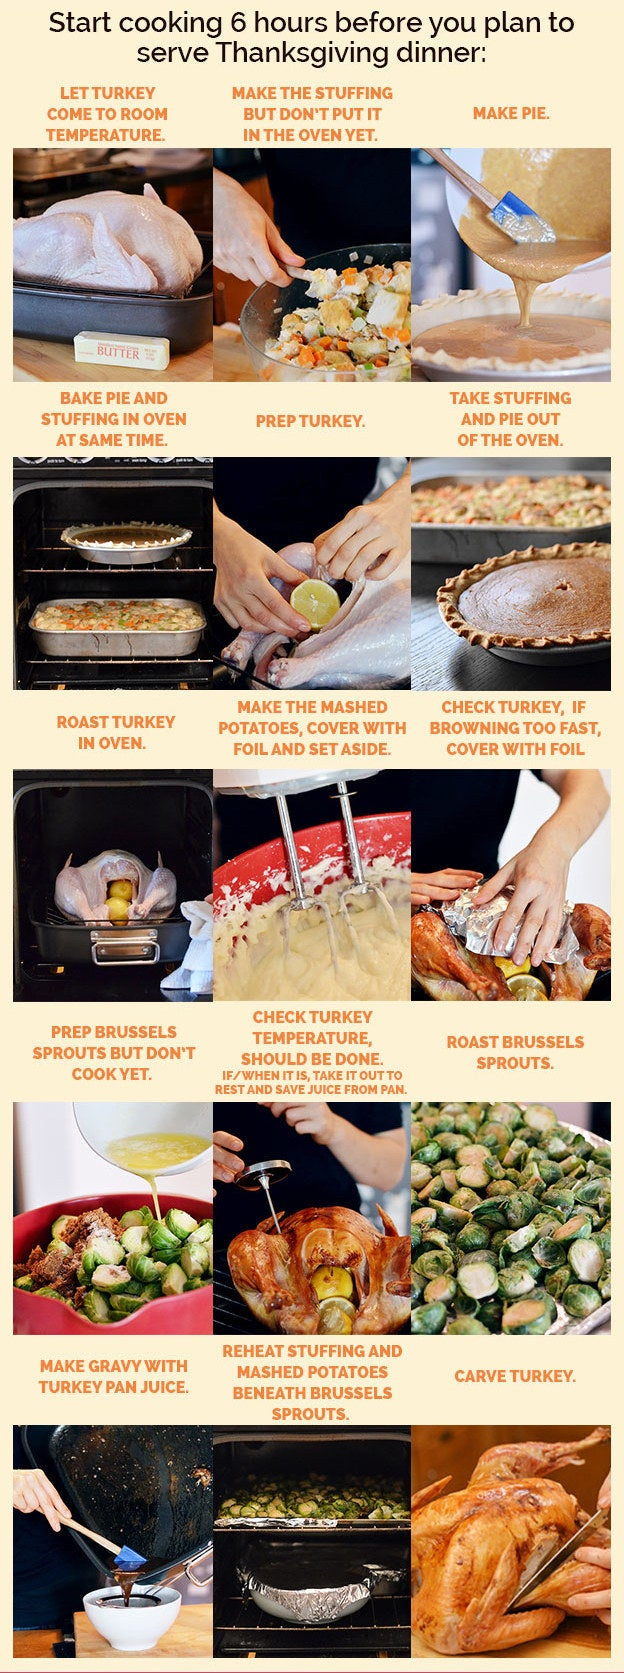 To do this, get your recipes printed out then go through them and figure out what order everything needs to happen in.